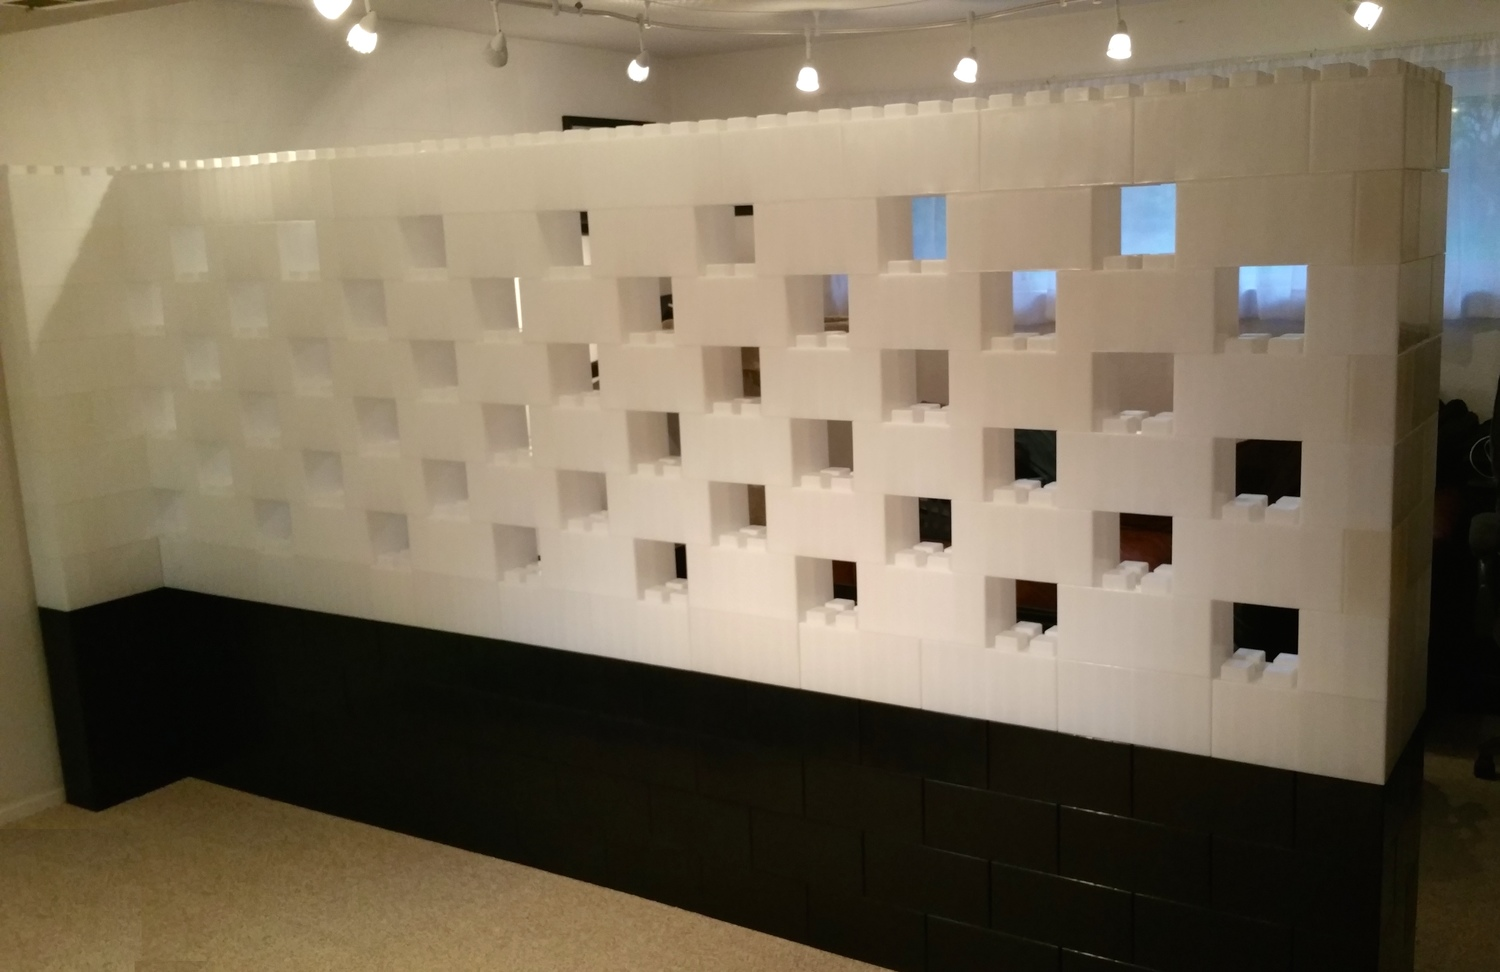 20151021_170506jpg temporary walls room dividers create partitions